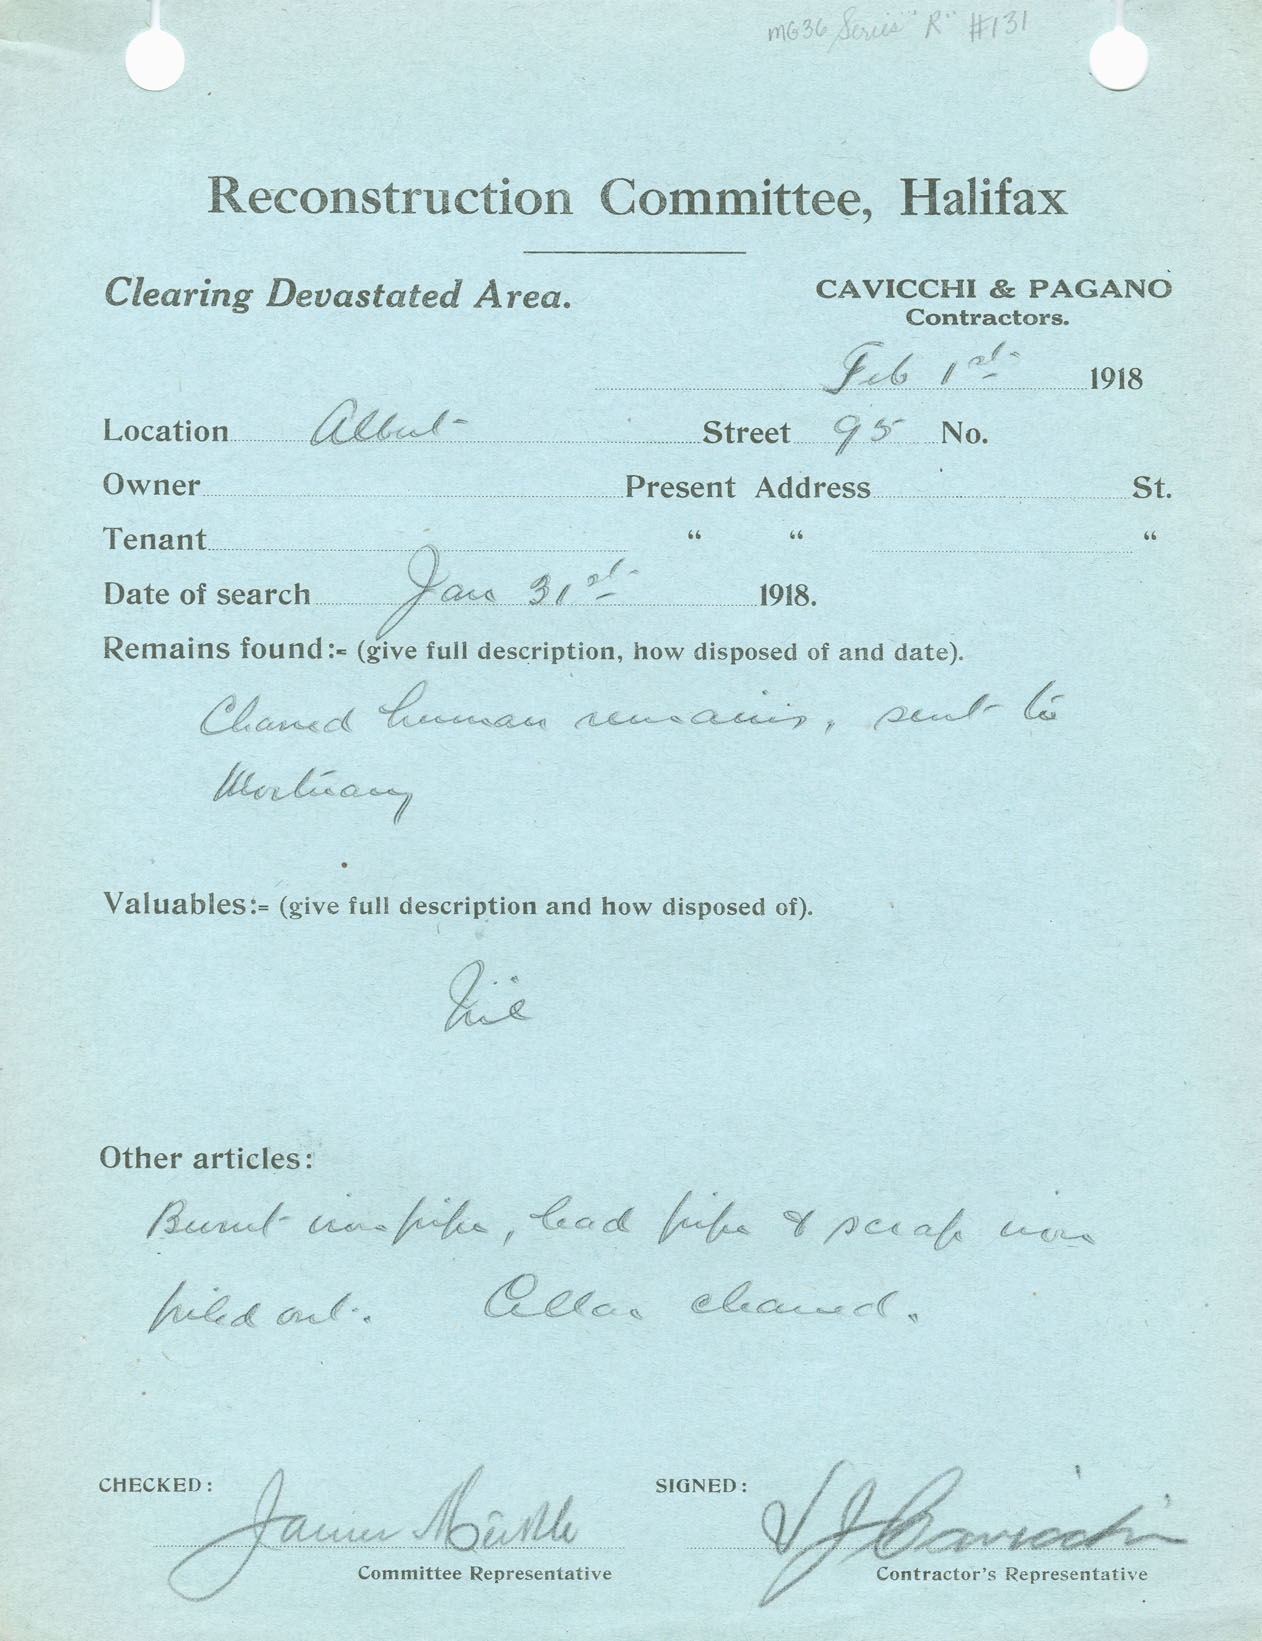 Report on the clean-up of 95 Albert Street, submitted by Cavicchi and Pagano, contractors, to the Reconstruction Committee, Halifax